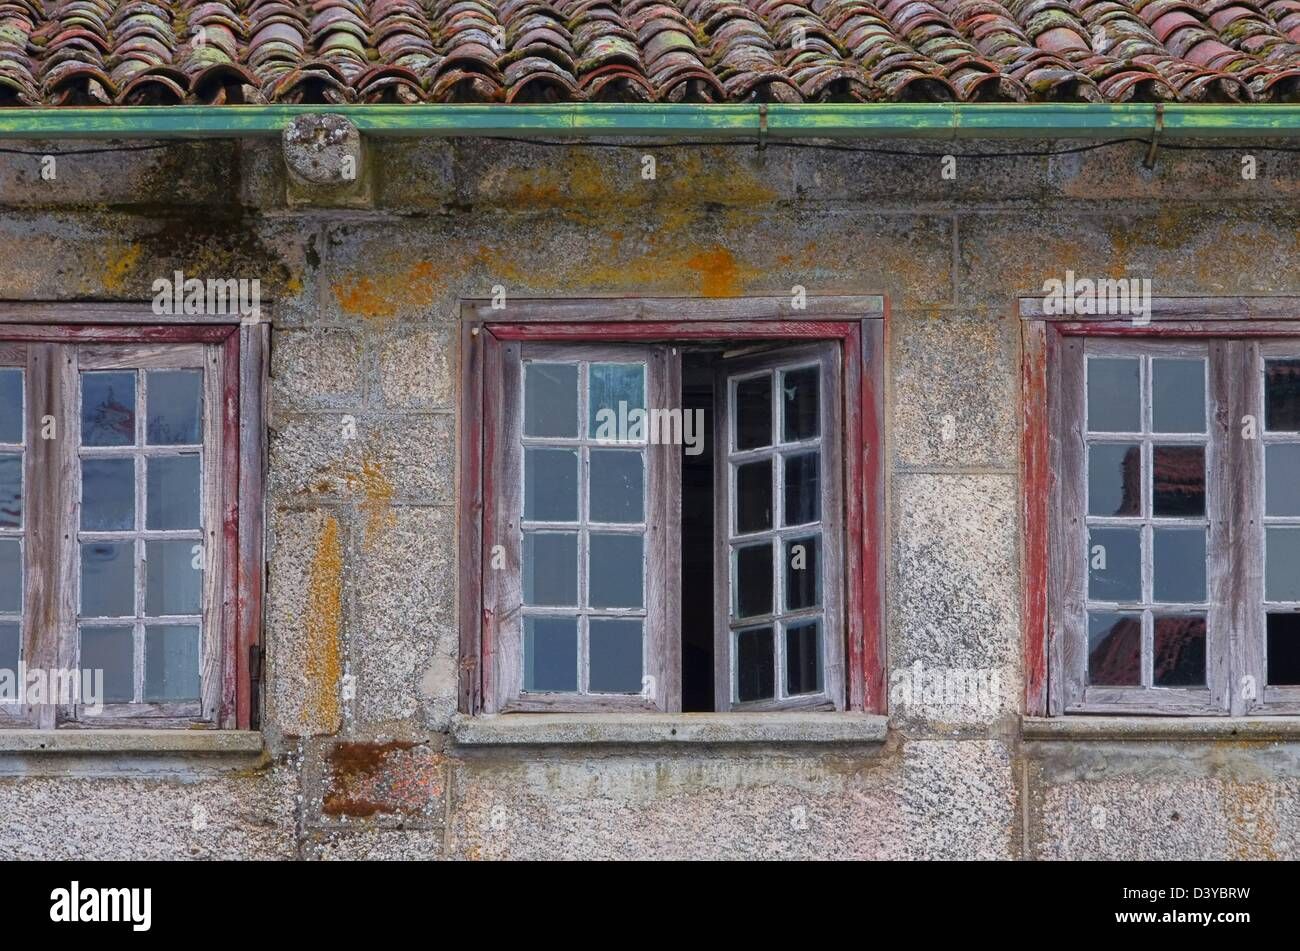 Fenster mediterran - window mediterranean 01 - Stock Image